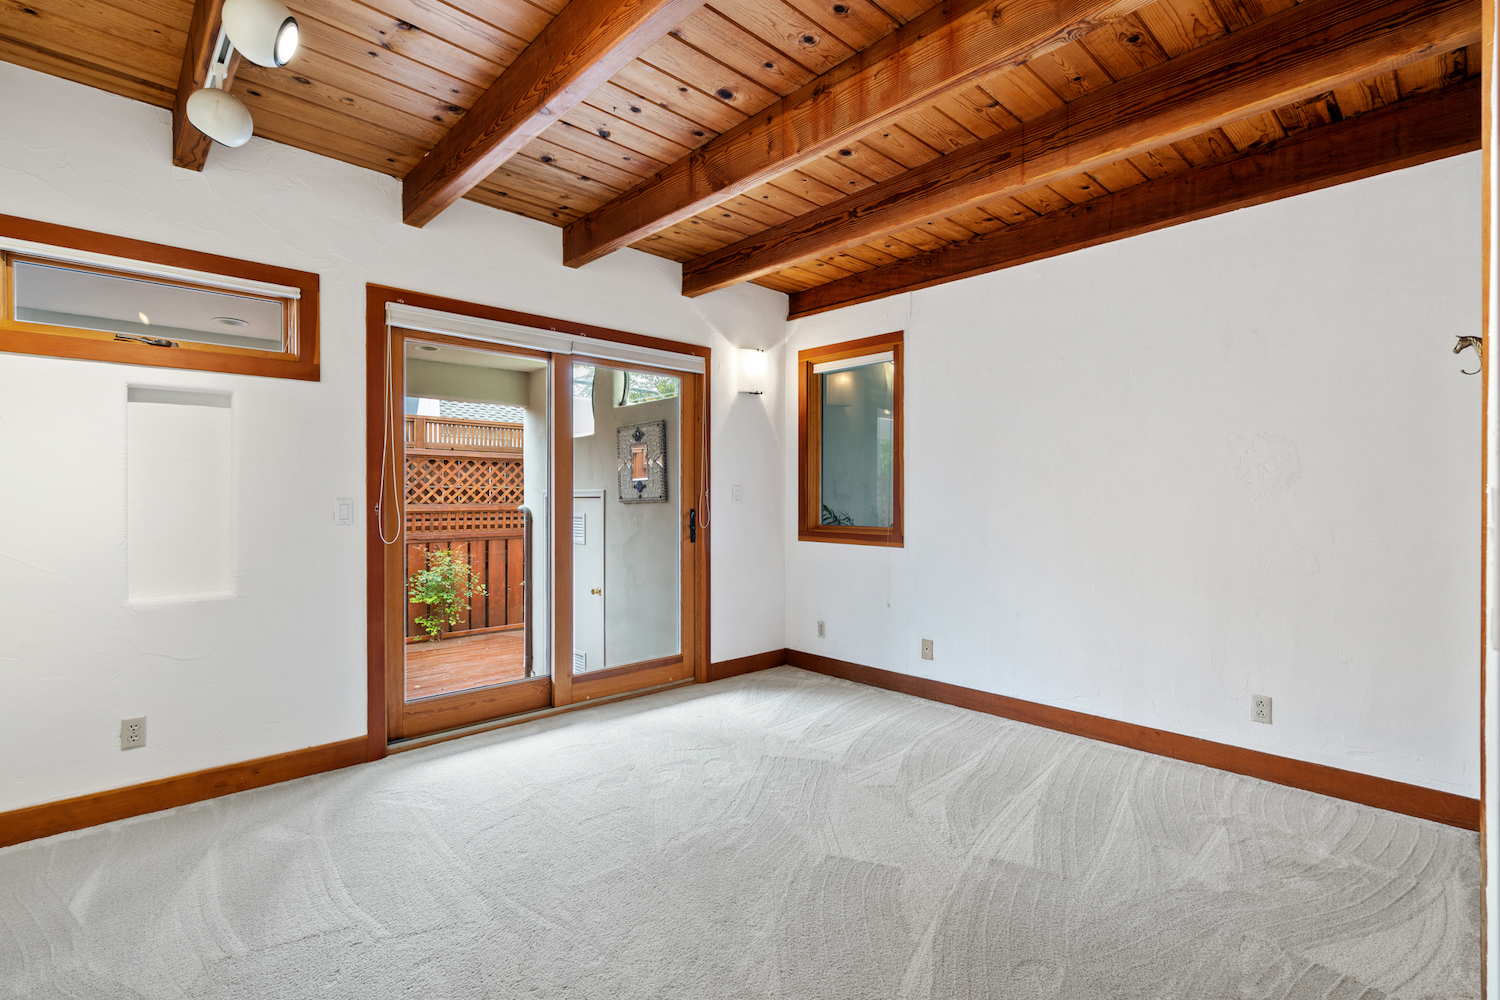 127 bethany curve - bedroom with private access